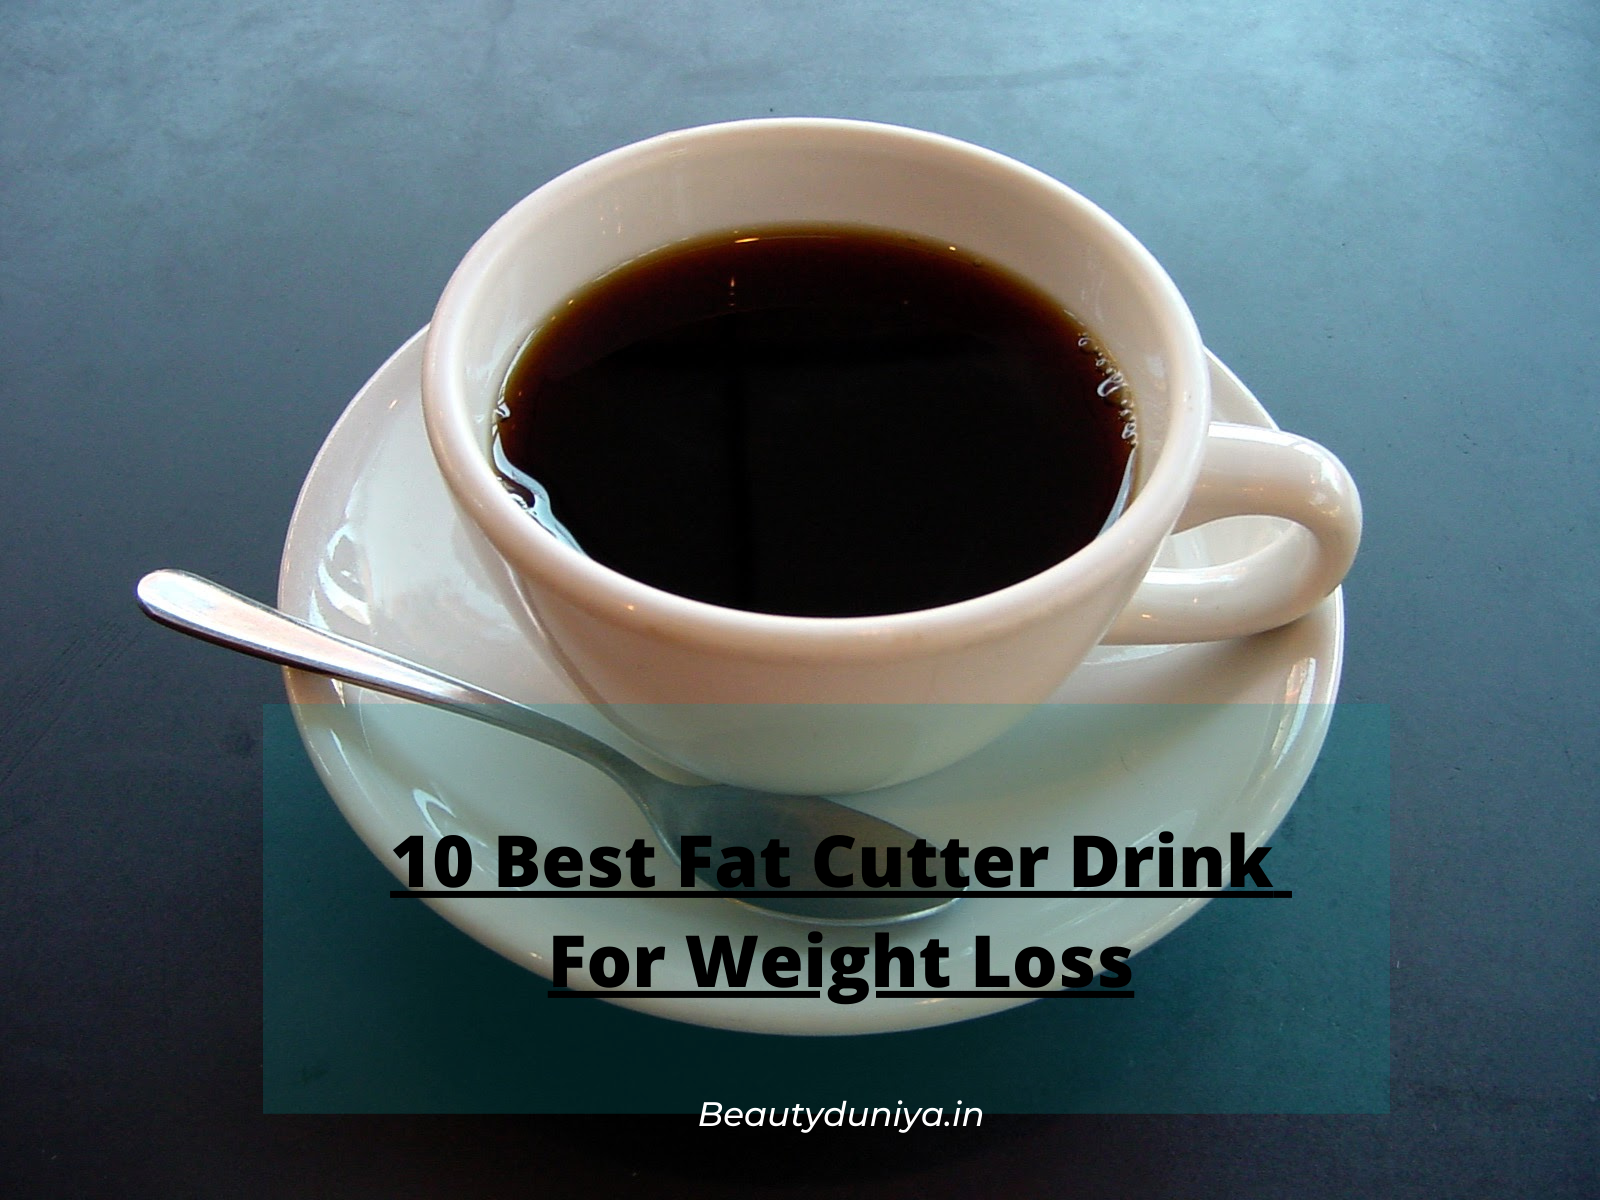 10 Best Fat Cutter Drink For Weight Loss| Lose 10 Kgs In 5 Days